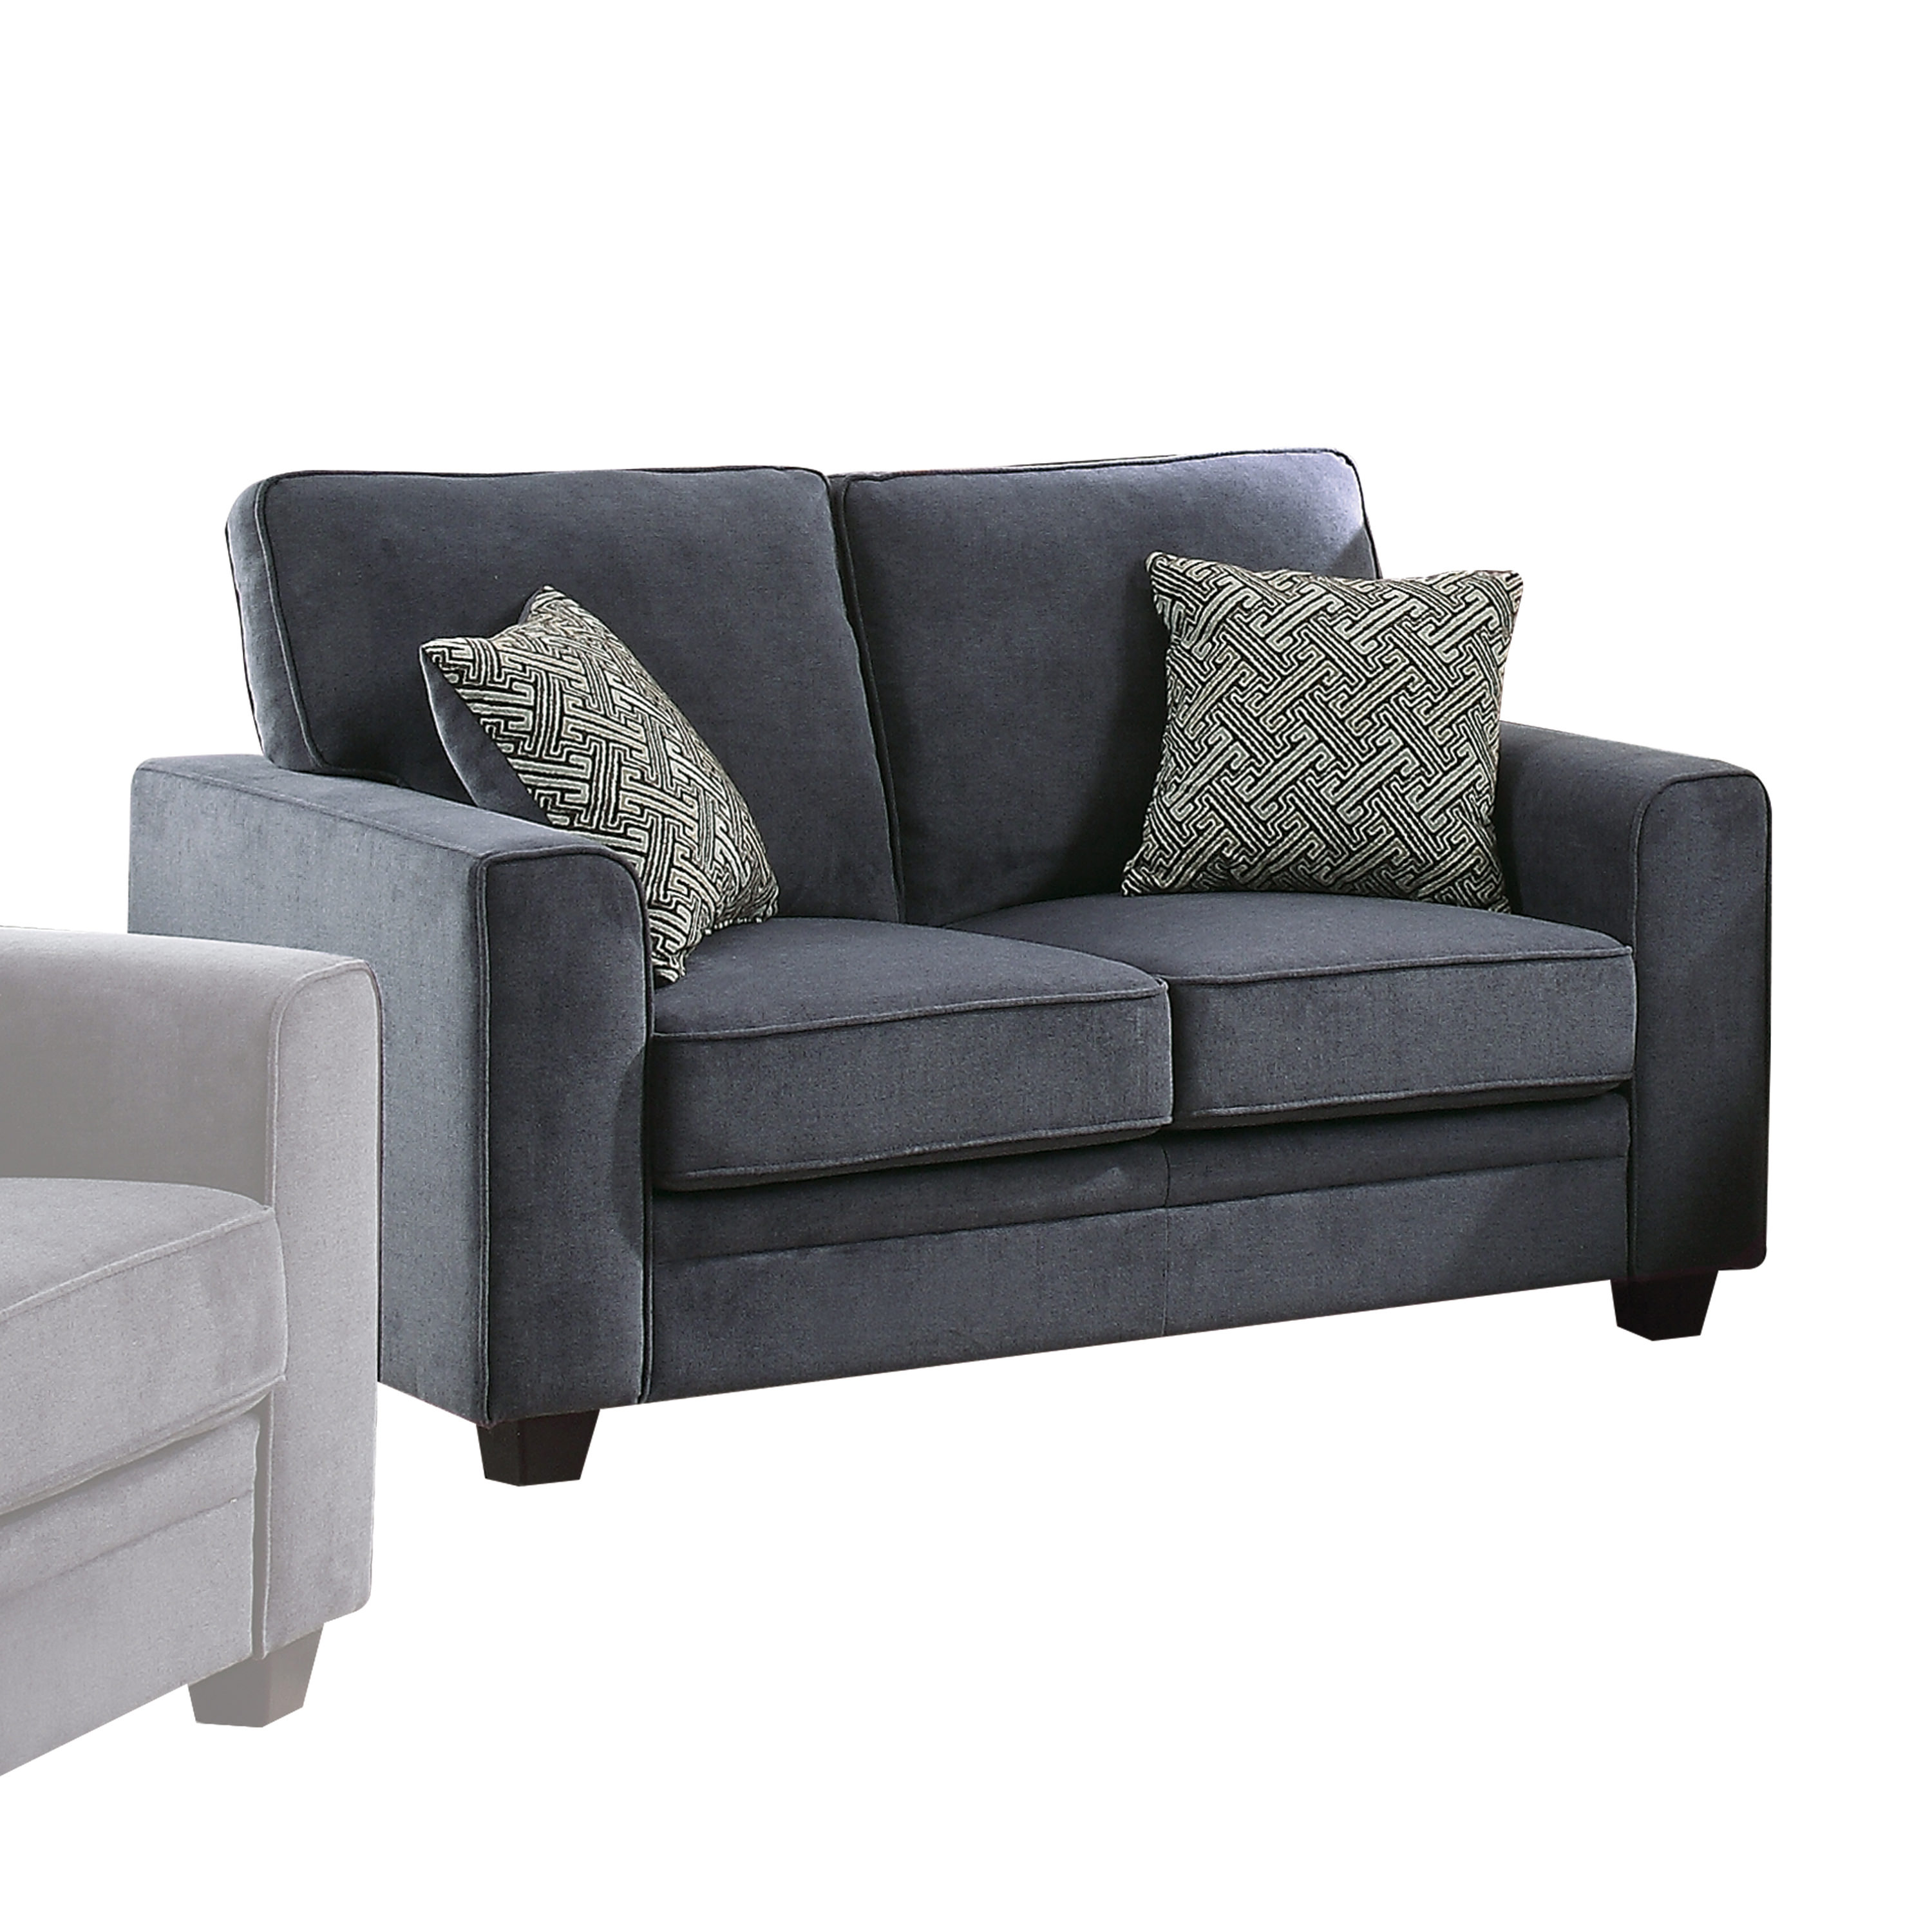 Acme Catherine Blue Fabric Stationary Loveseat Sleeper with 2 Pillows